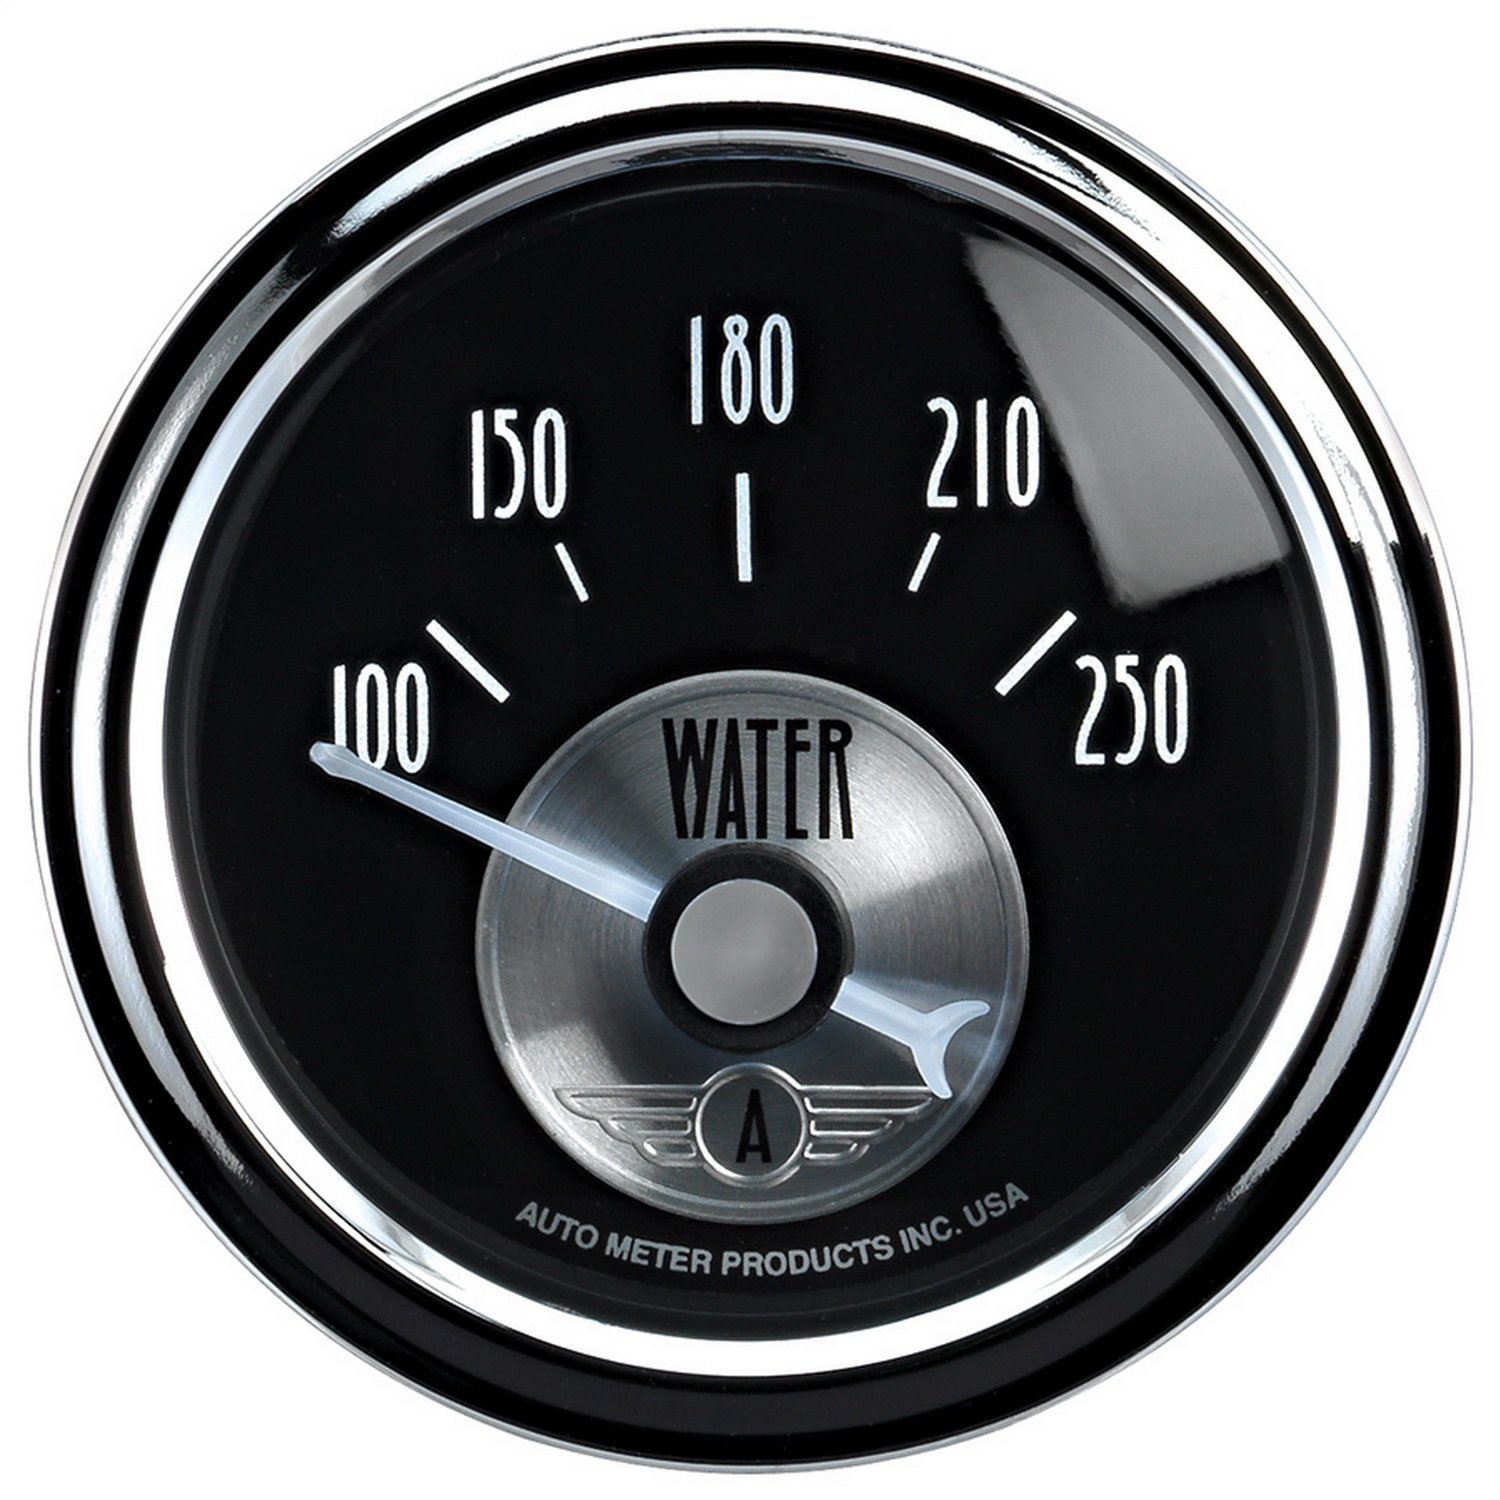 Auto Meter 2038 Prestige Black 2-1/16' 100-250 Degree Water Temperature Gauge